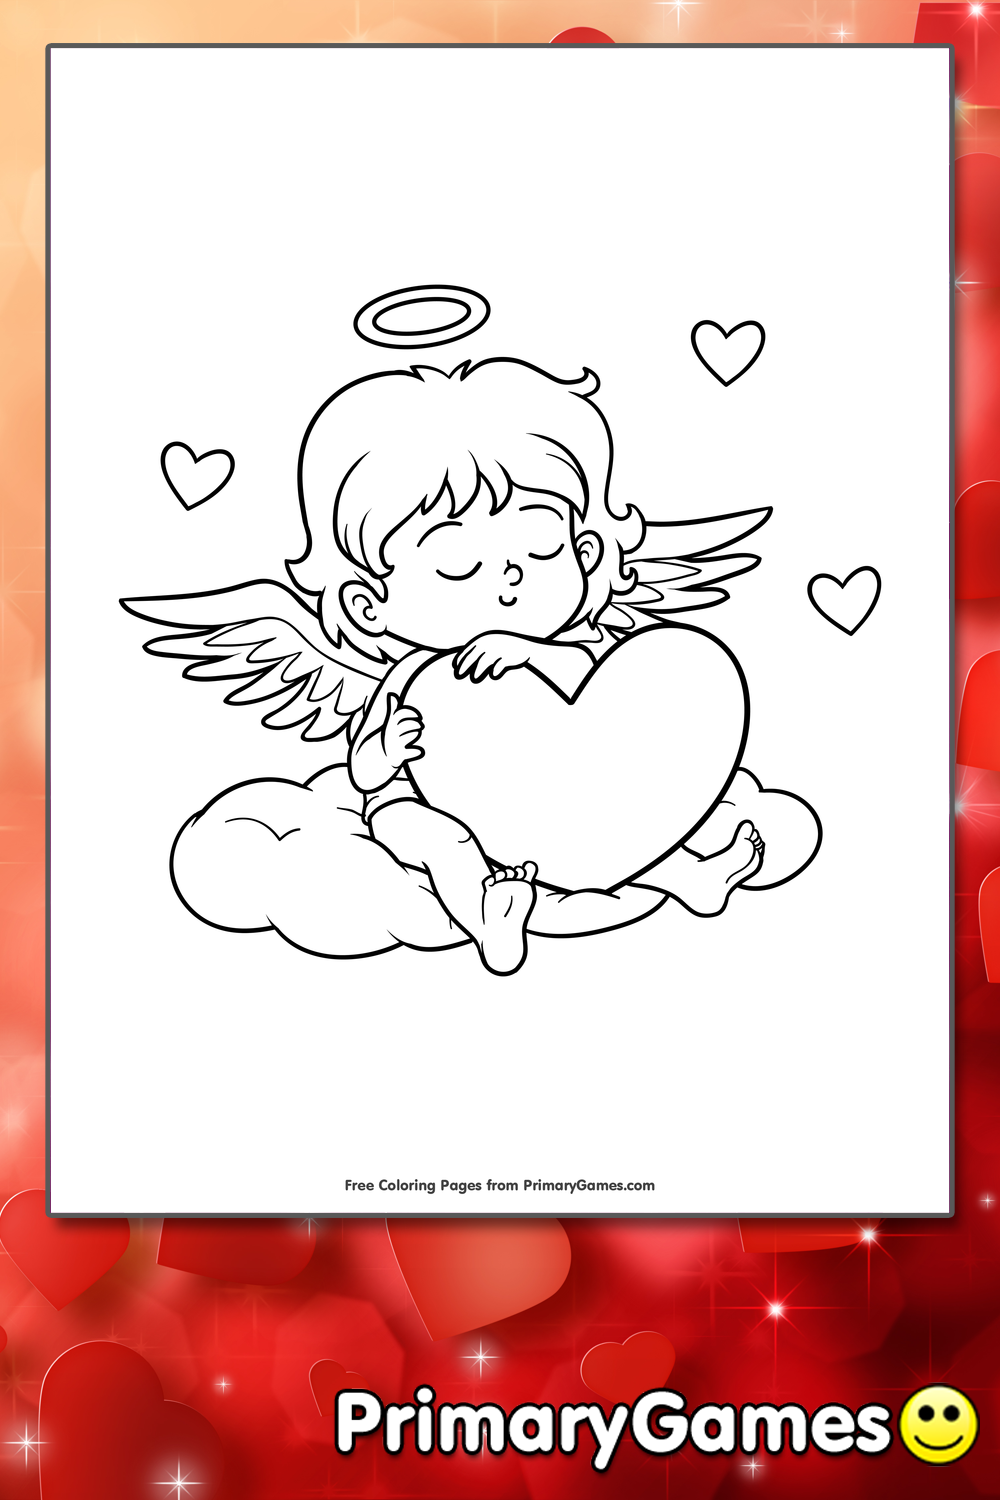 Sleeping Cupid Coloring Page • FREE Printable PDF from PrimaryGames